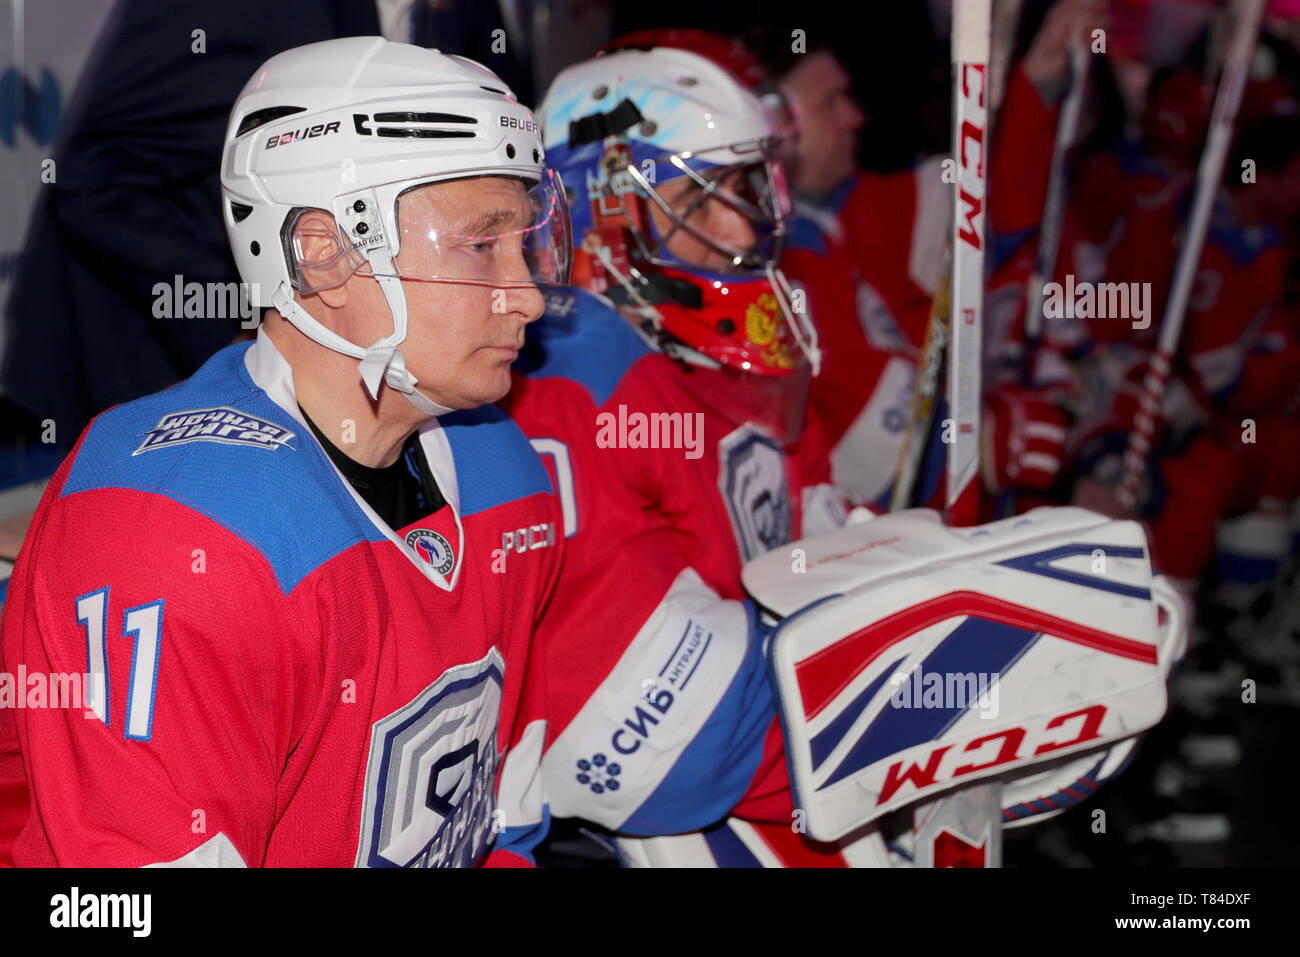 Sochi, Russia. 10th May, 2019. SOCHI, RUSSIA - MAY 10, 2019: Russia's President Vladimir Putin in a Night Hockey League gala match at the Bolshoi Ice Palace. Mikhail Klimentyev/Russian Presidential Press and Information Office/TASS Credit: ITAR-TASS News Agency/Alamy Live News - Stock Image